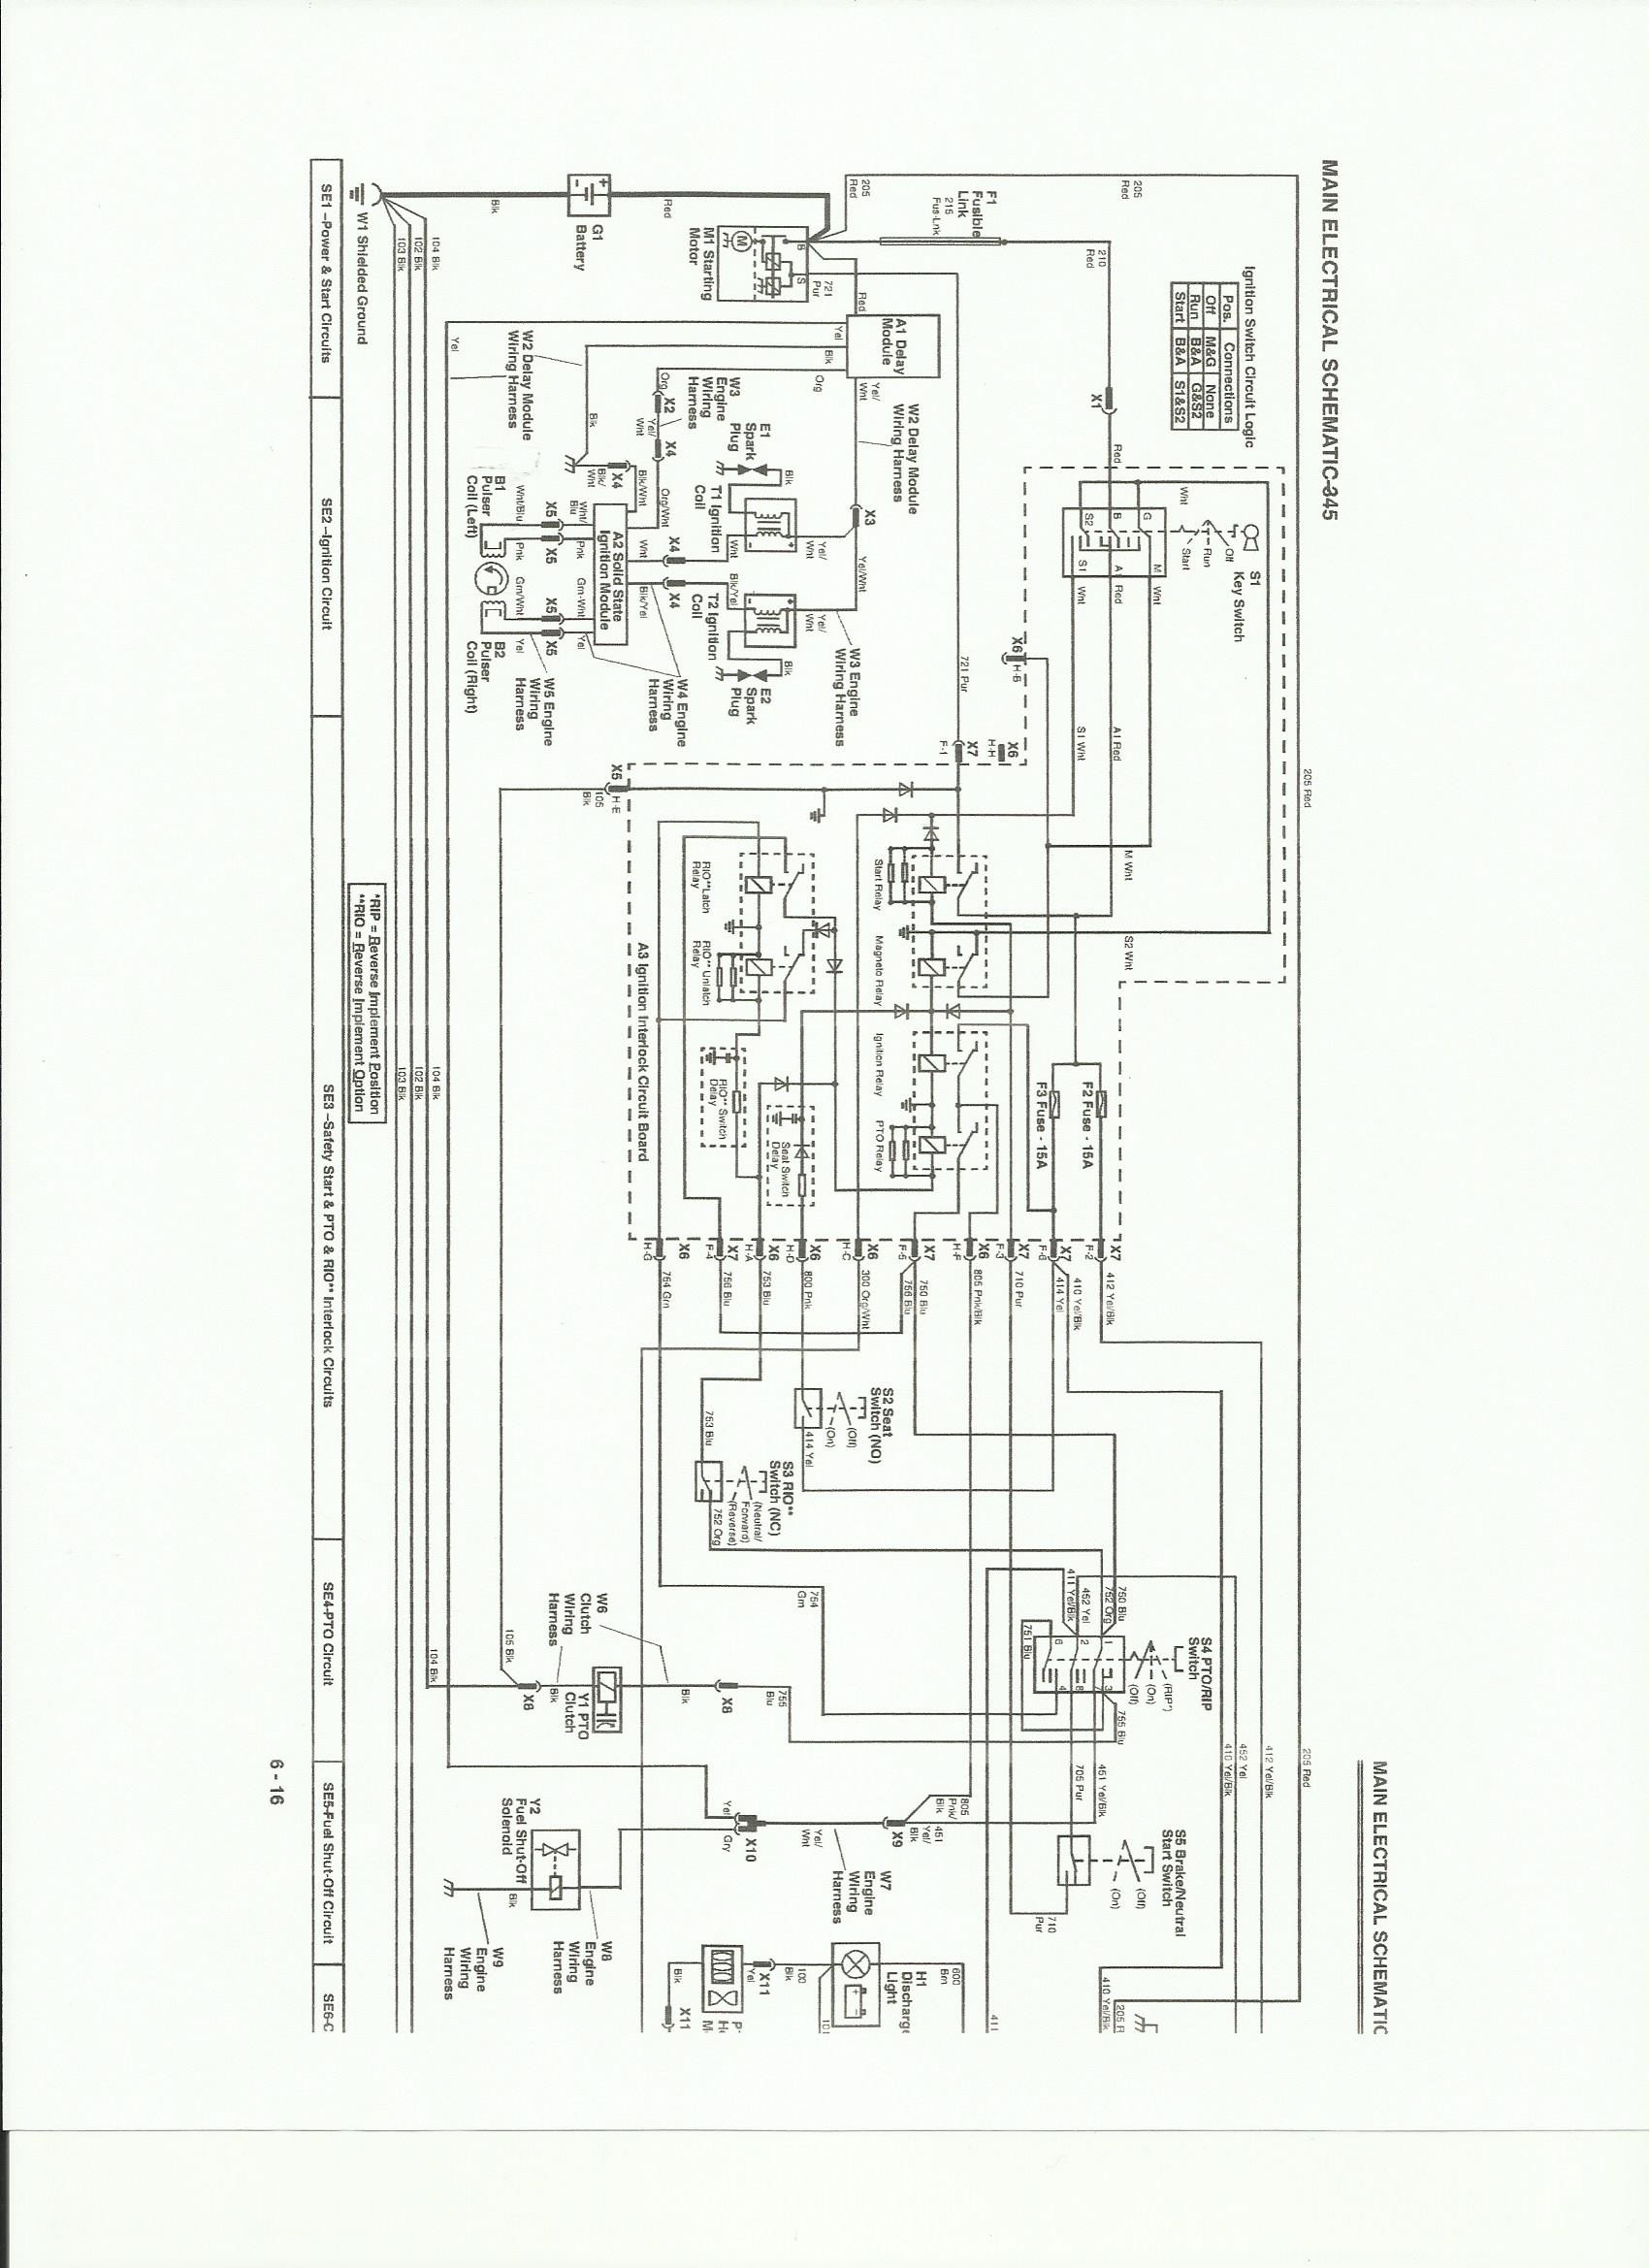 John Deere 345 Schematic 4726 John Deere 345 Engine Wiring Schematic Of John Deere 345 Schematic Cb 4290] for John Deere 1050 Tractor Wiring Diagram